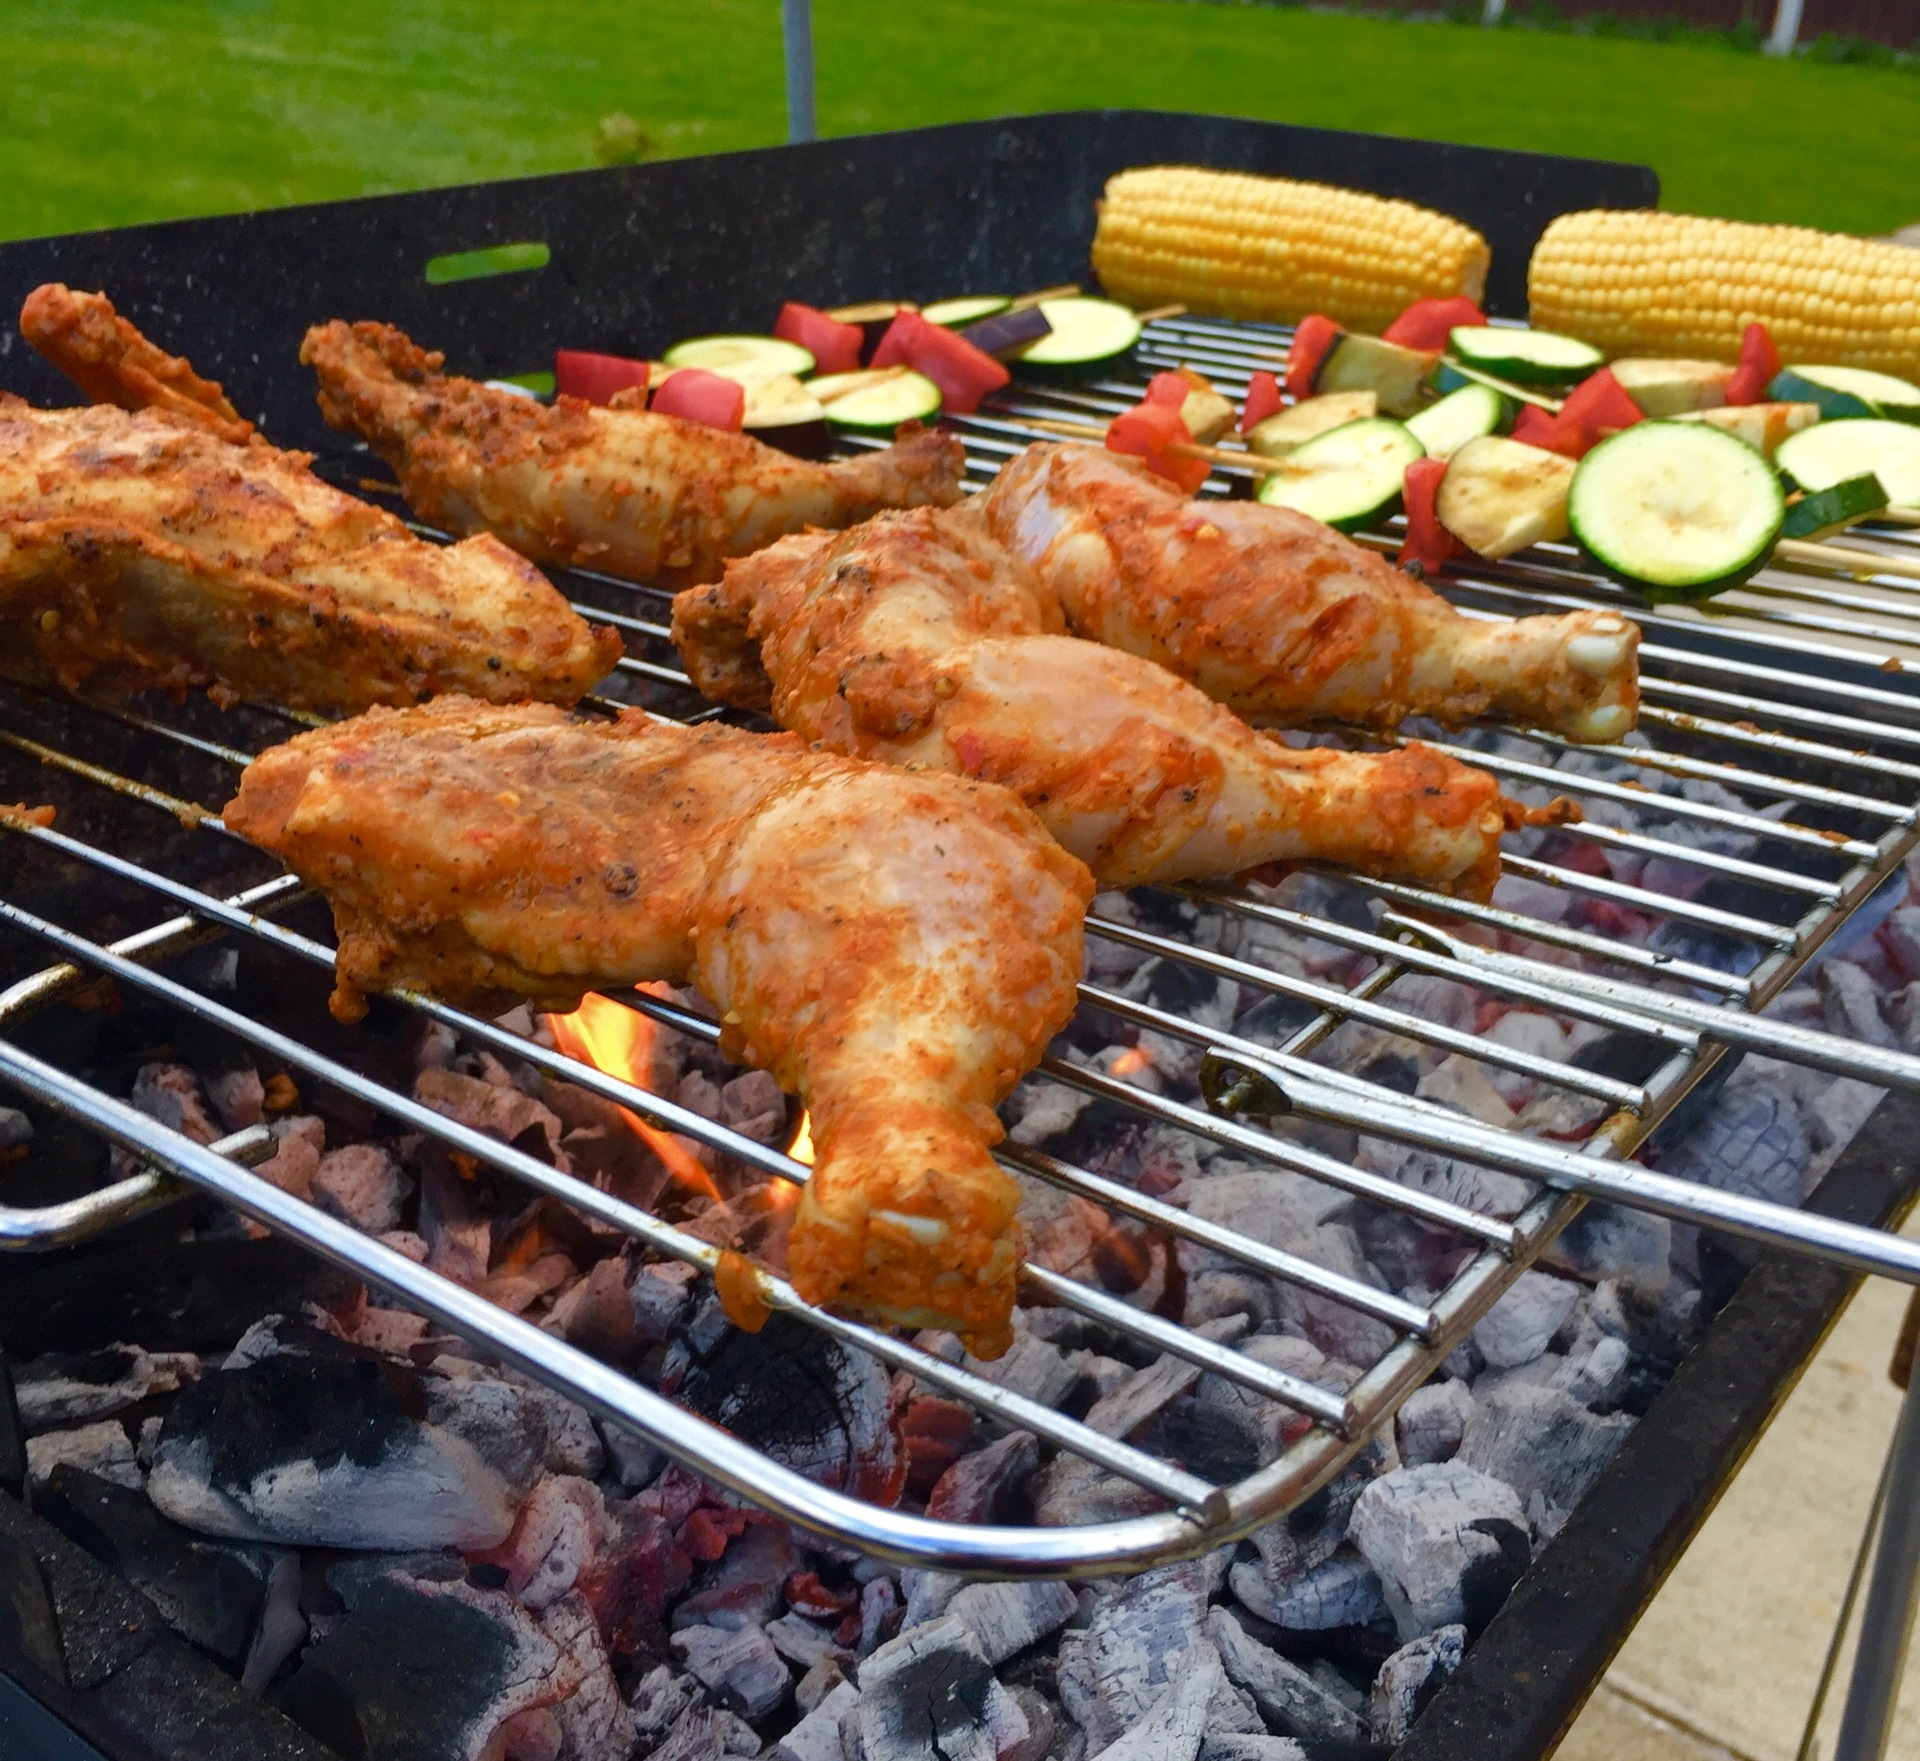 It's barbecue time  | banu11, charcoal, chicken, coal